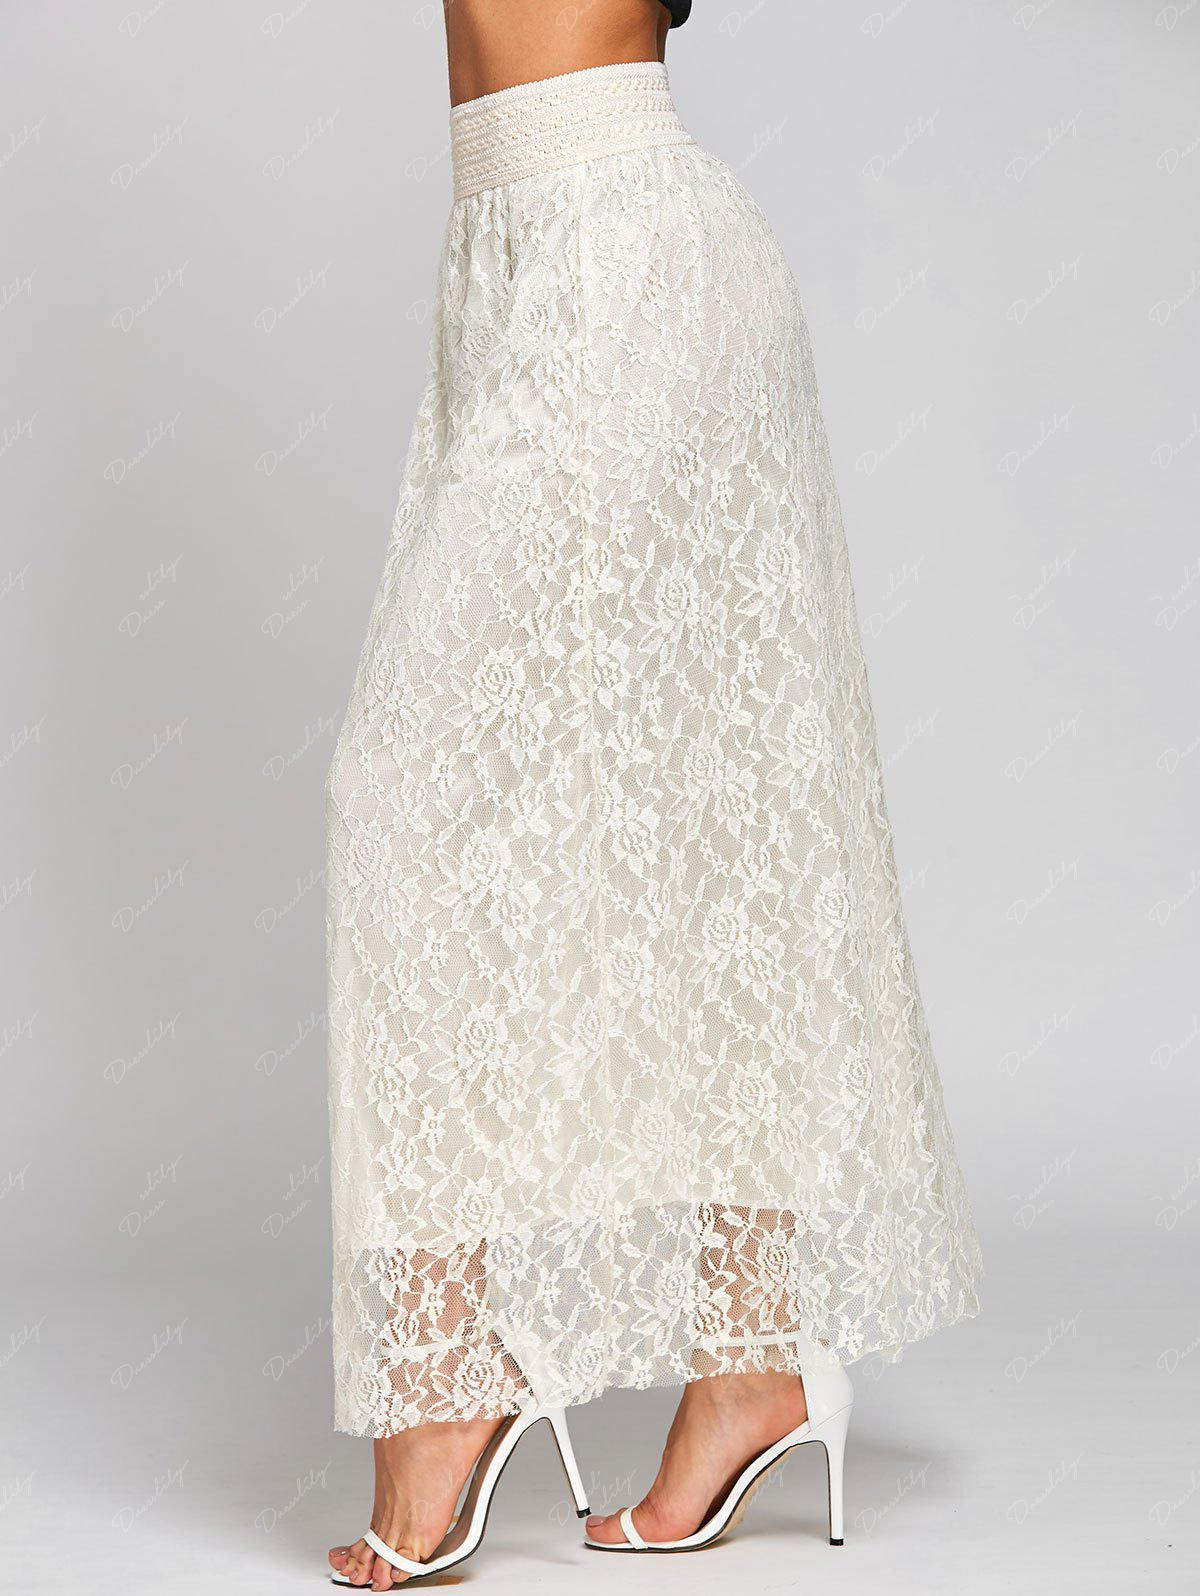 High Waist Lace Maxi Skirt - OFF WHITE XL